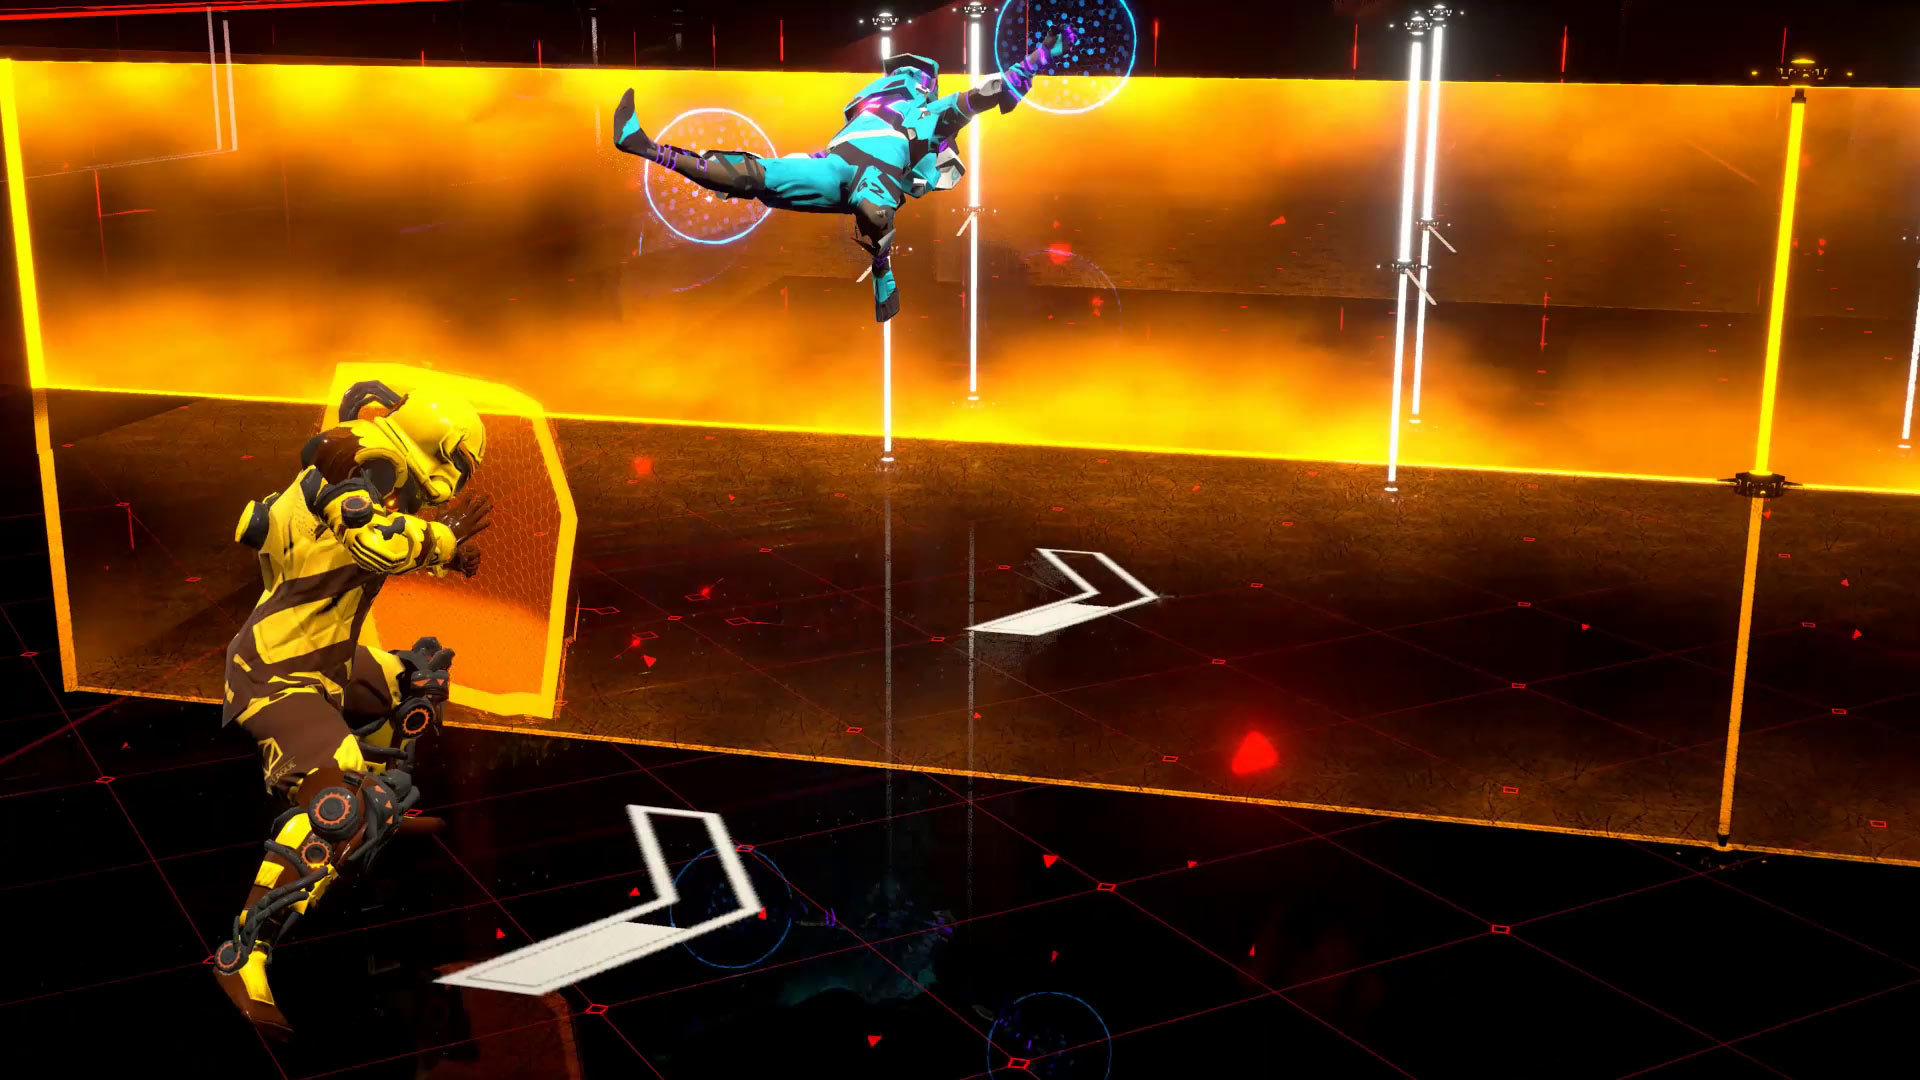 Laser League Game Ps4 Playstation How To Repair Your Plasystation 3 Screenshot 6